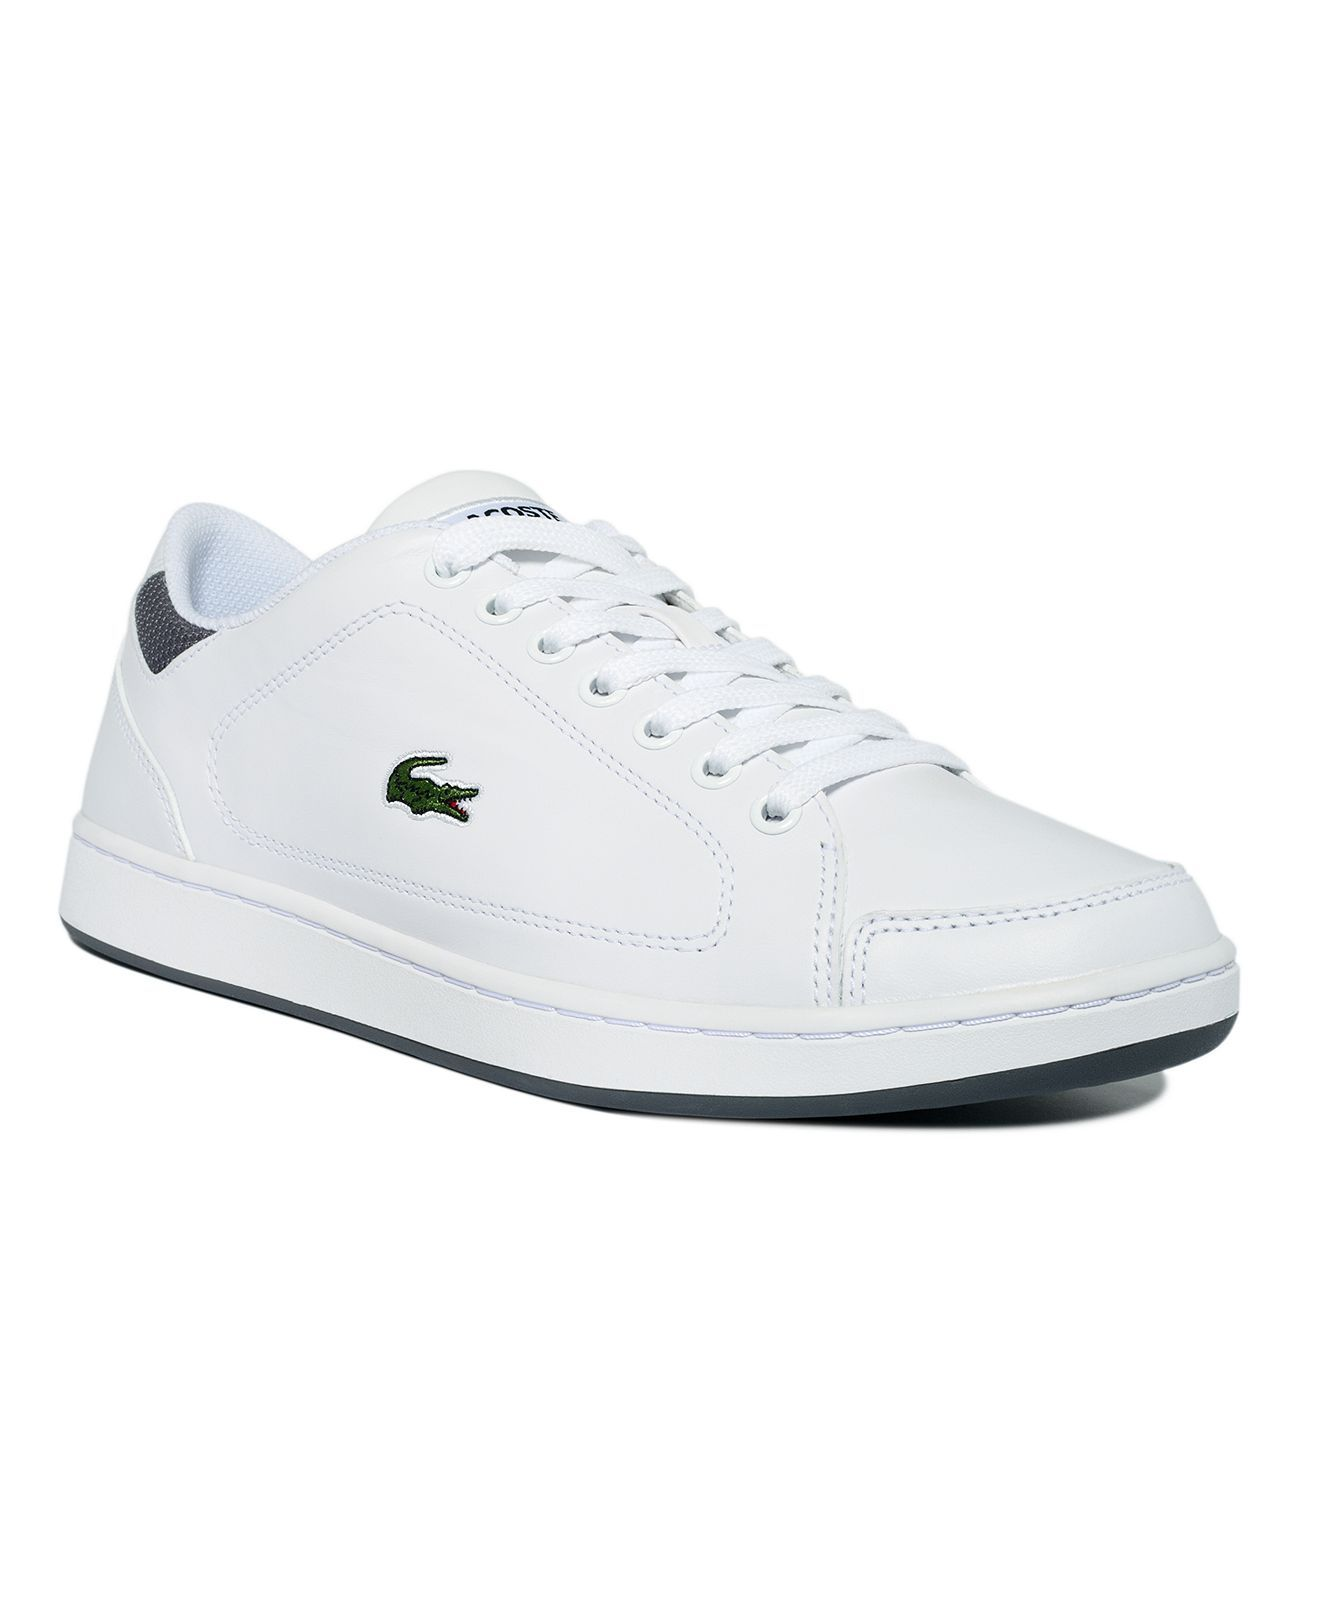 08114f8f41aca9 Lacoste Shoes